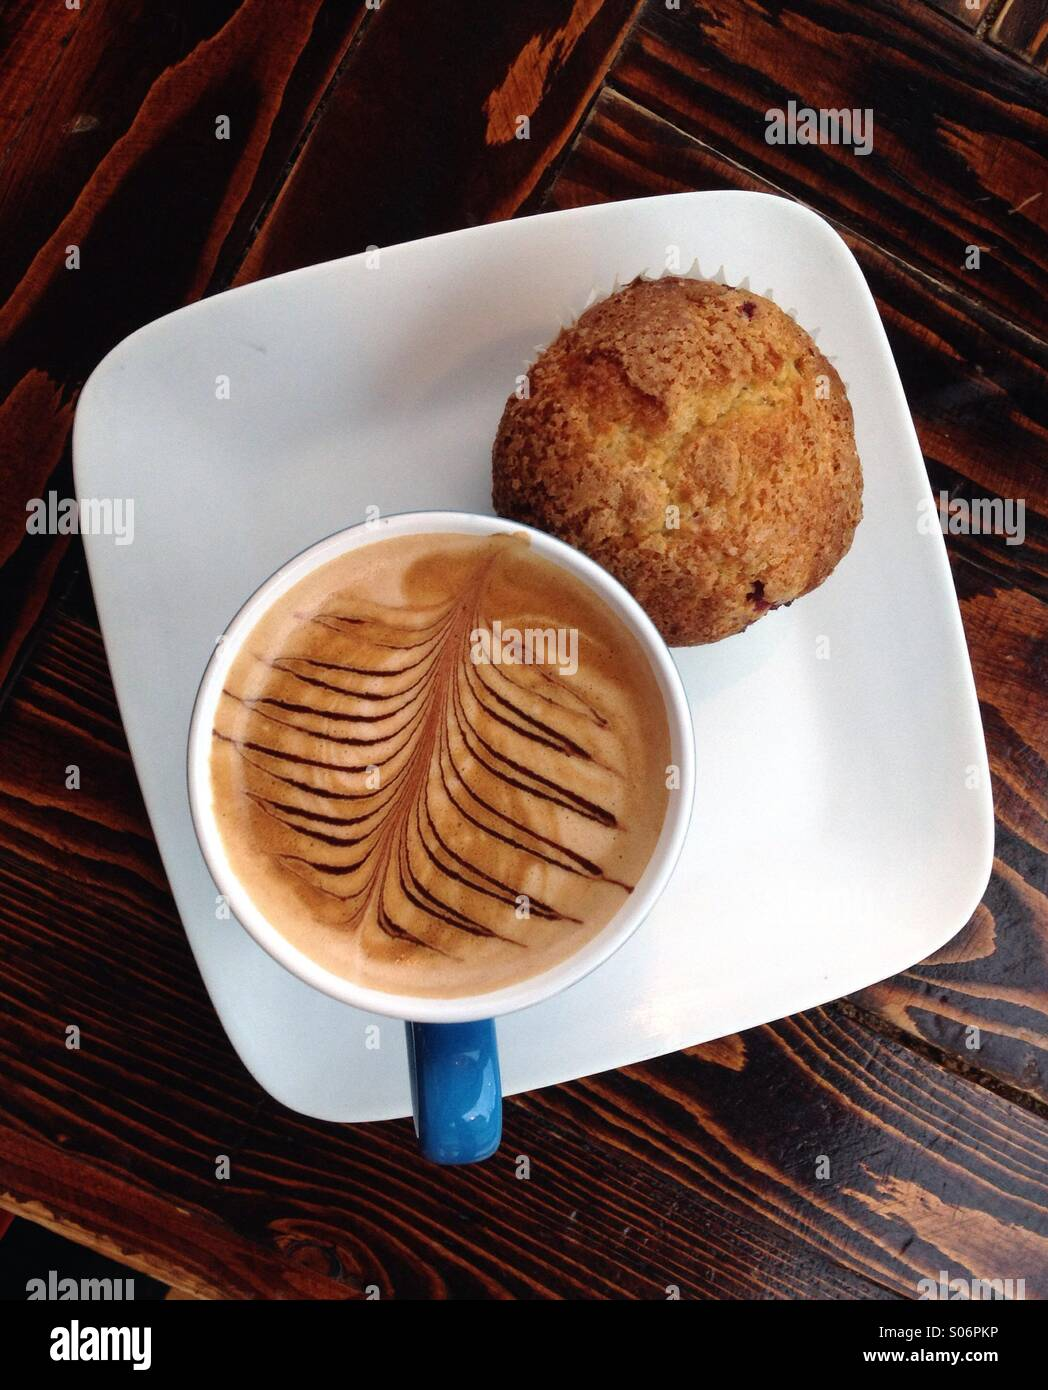 Artistic mocha with cranberry muffin - Stock Image